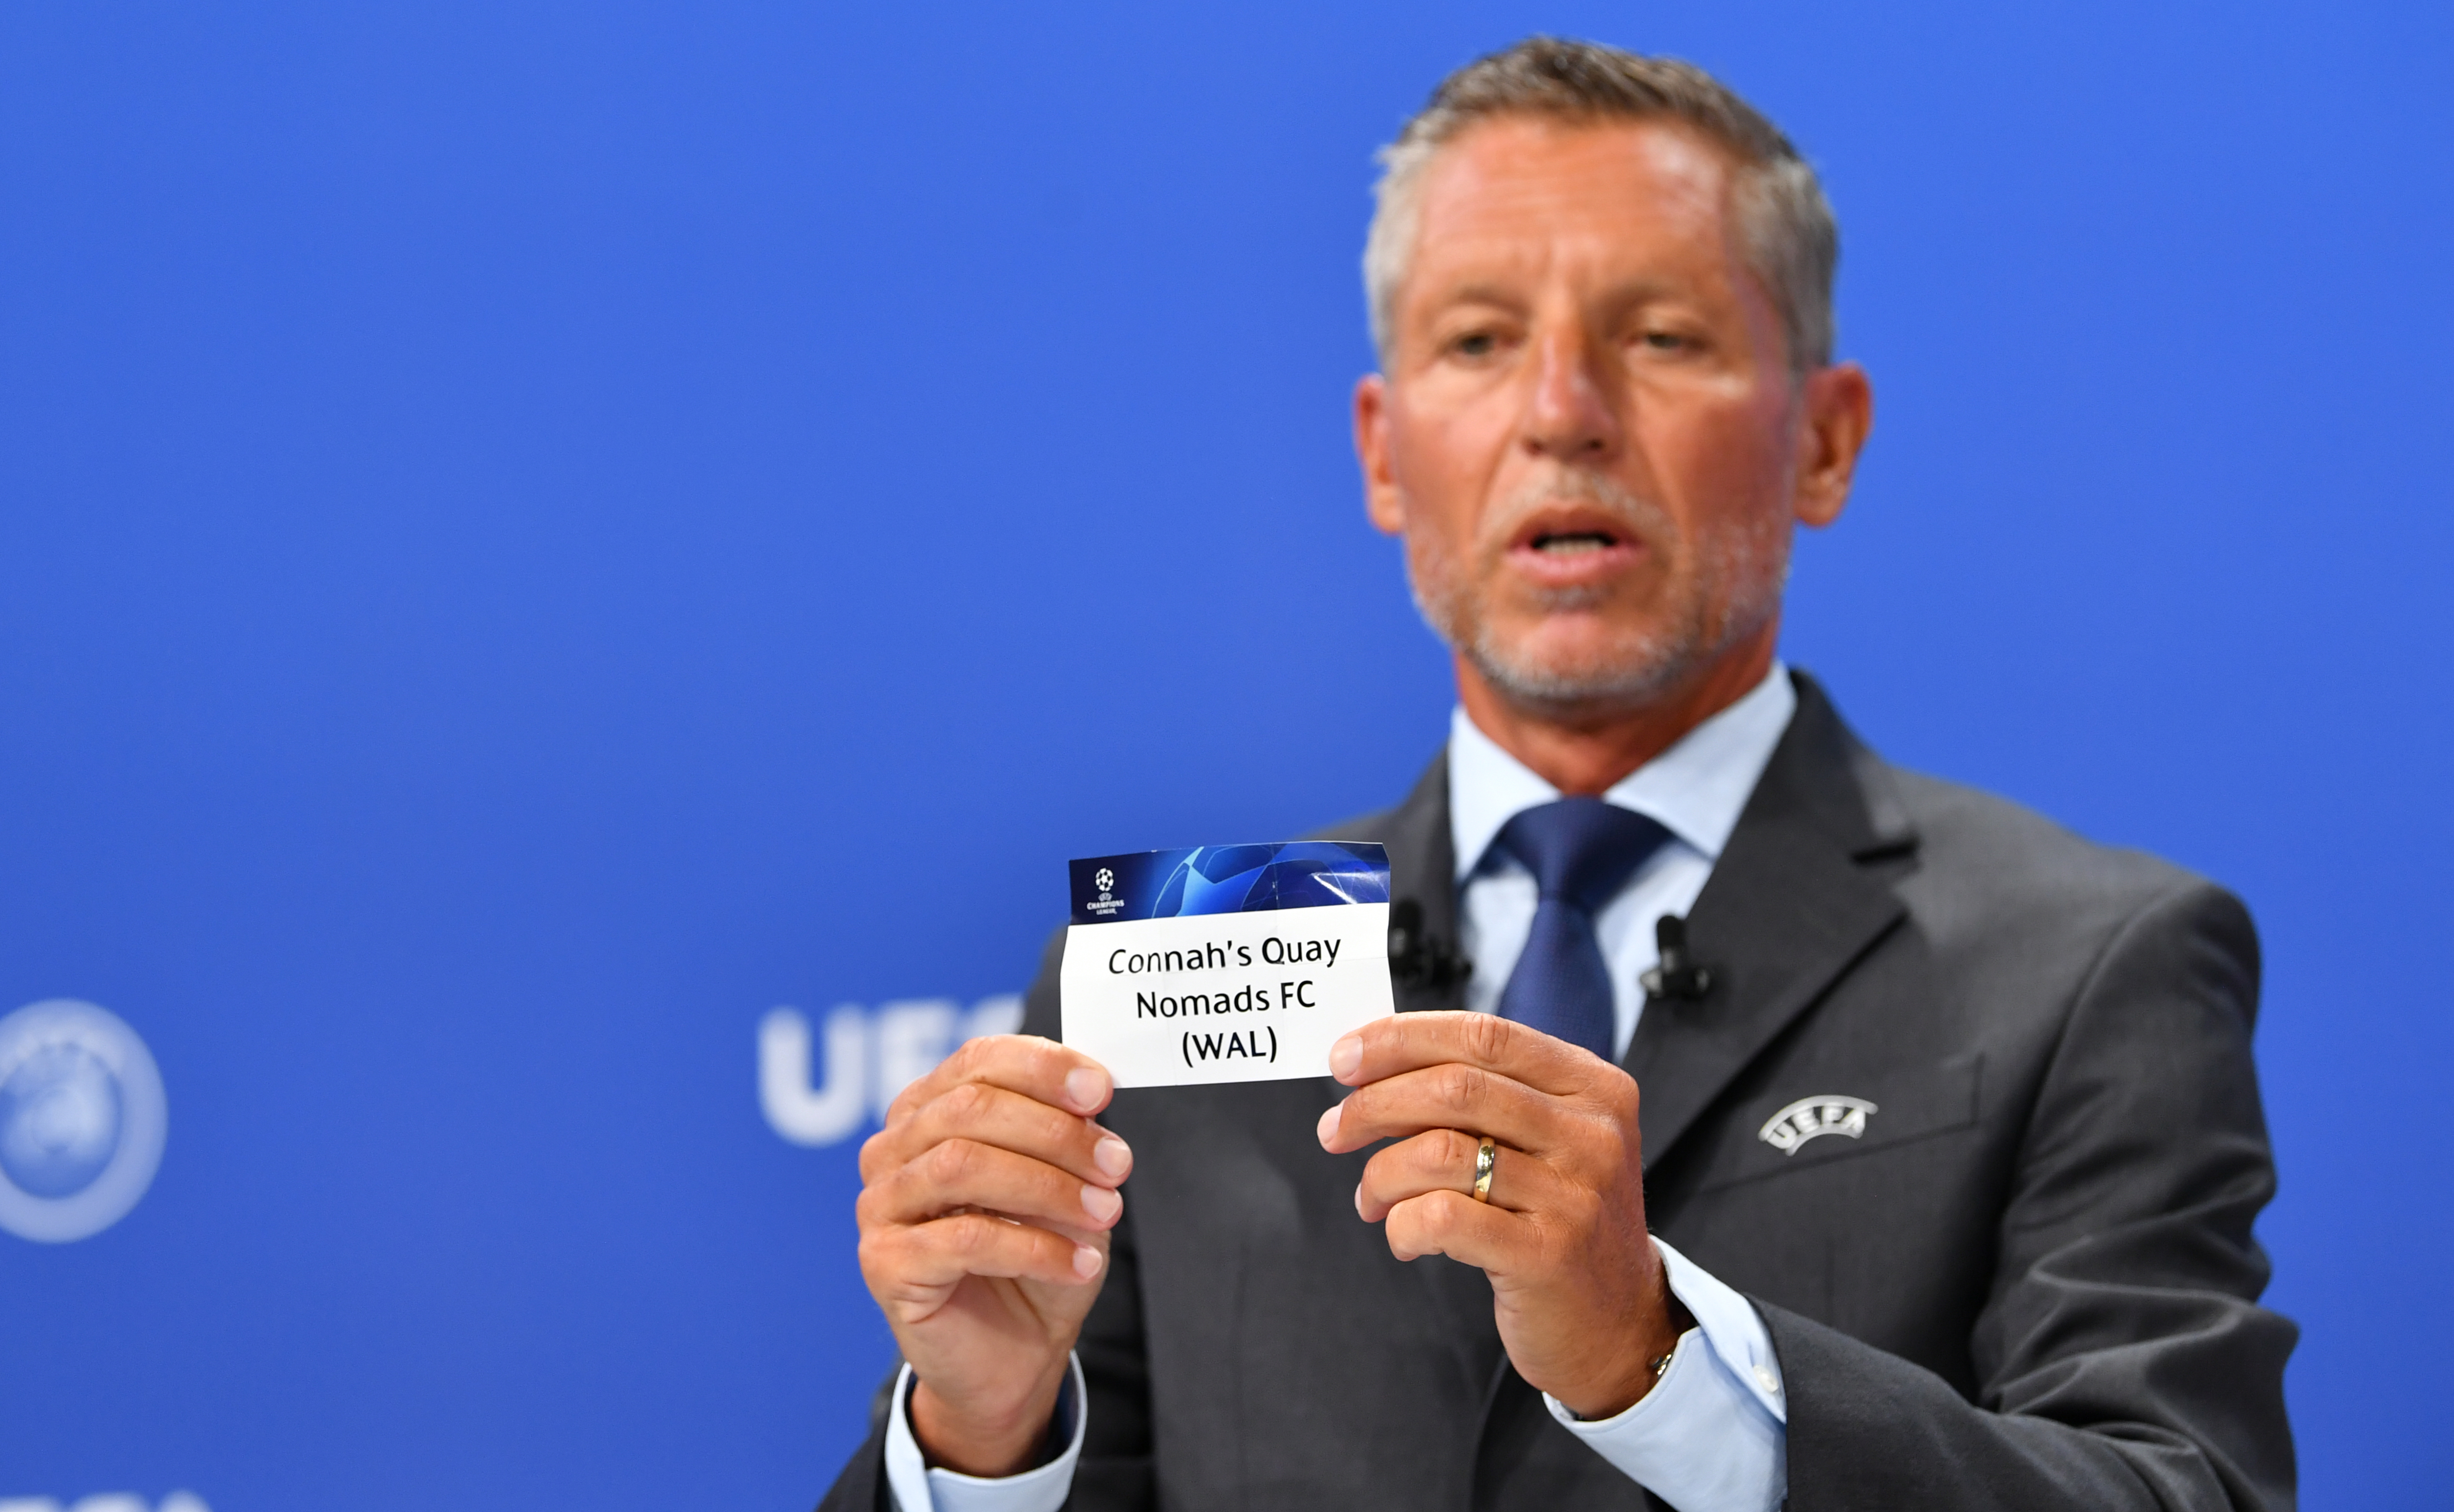 UEFA Head of Club Compeititions Michael Heselschwerdt draw Connah's Quay Nomads out of the pot | © UEFA